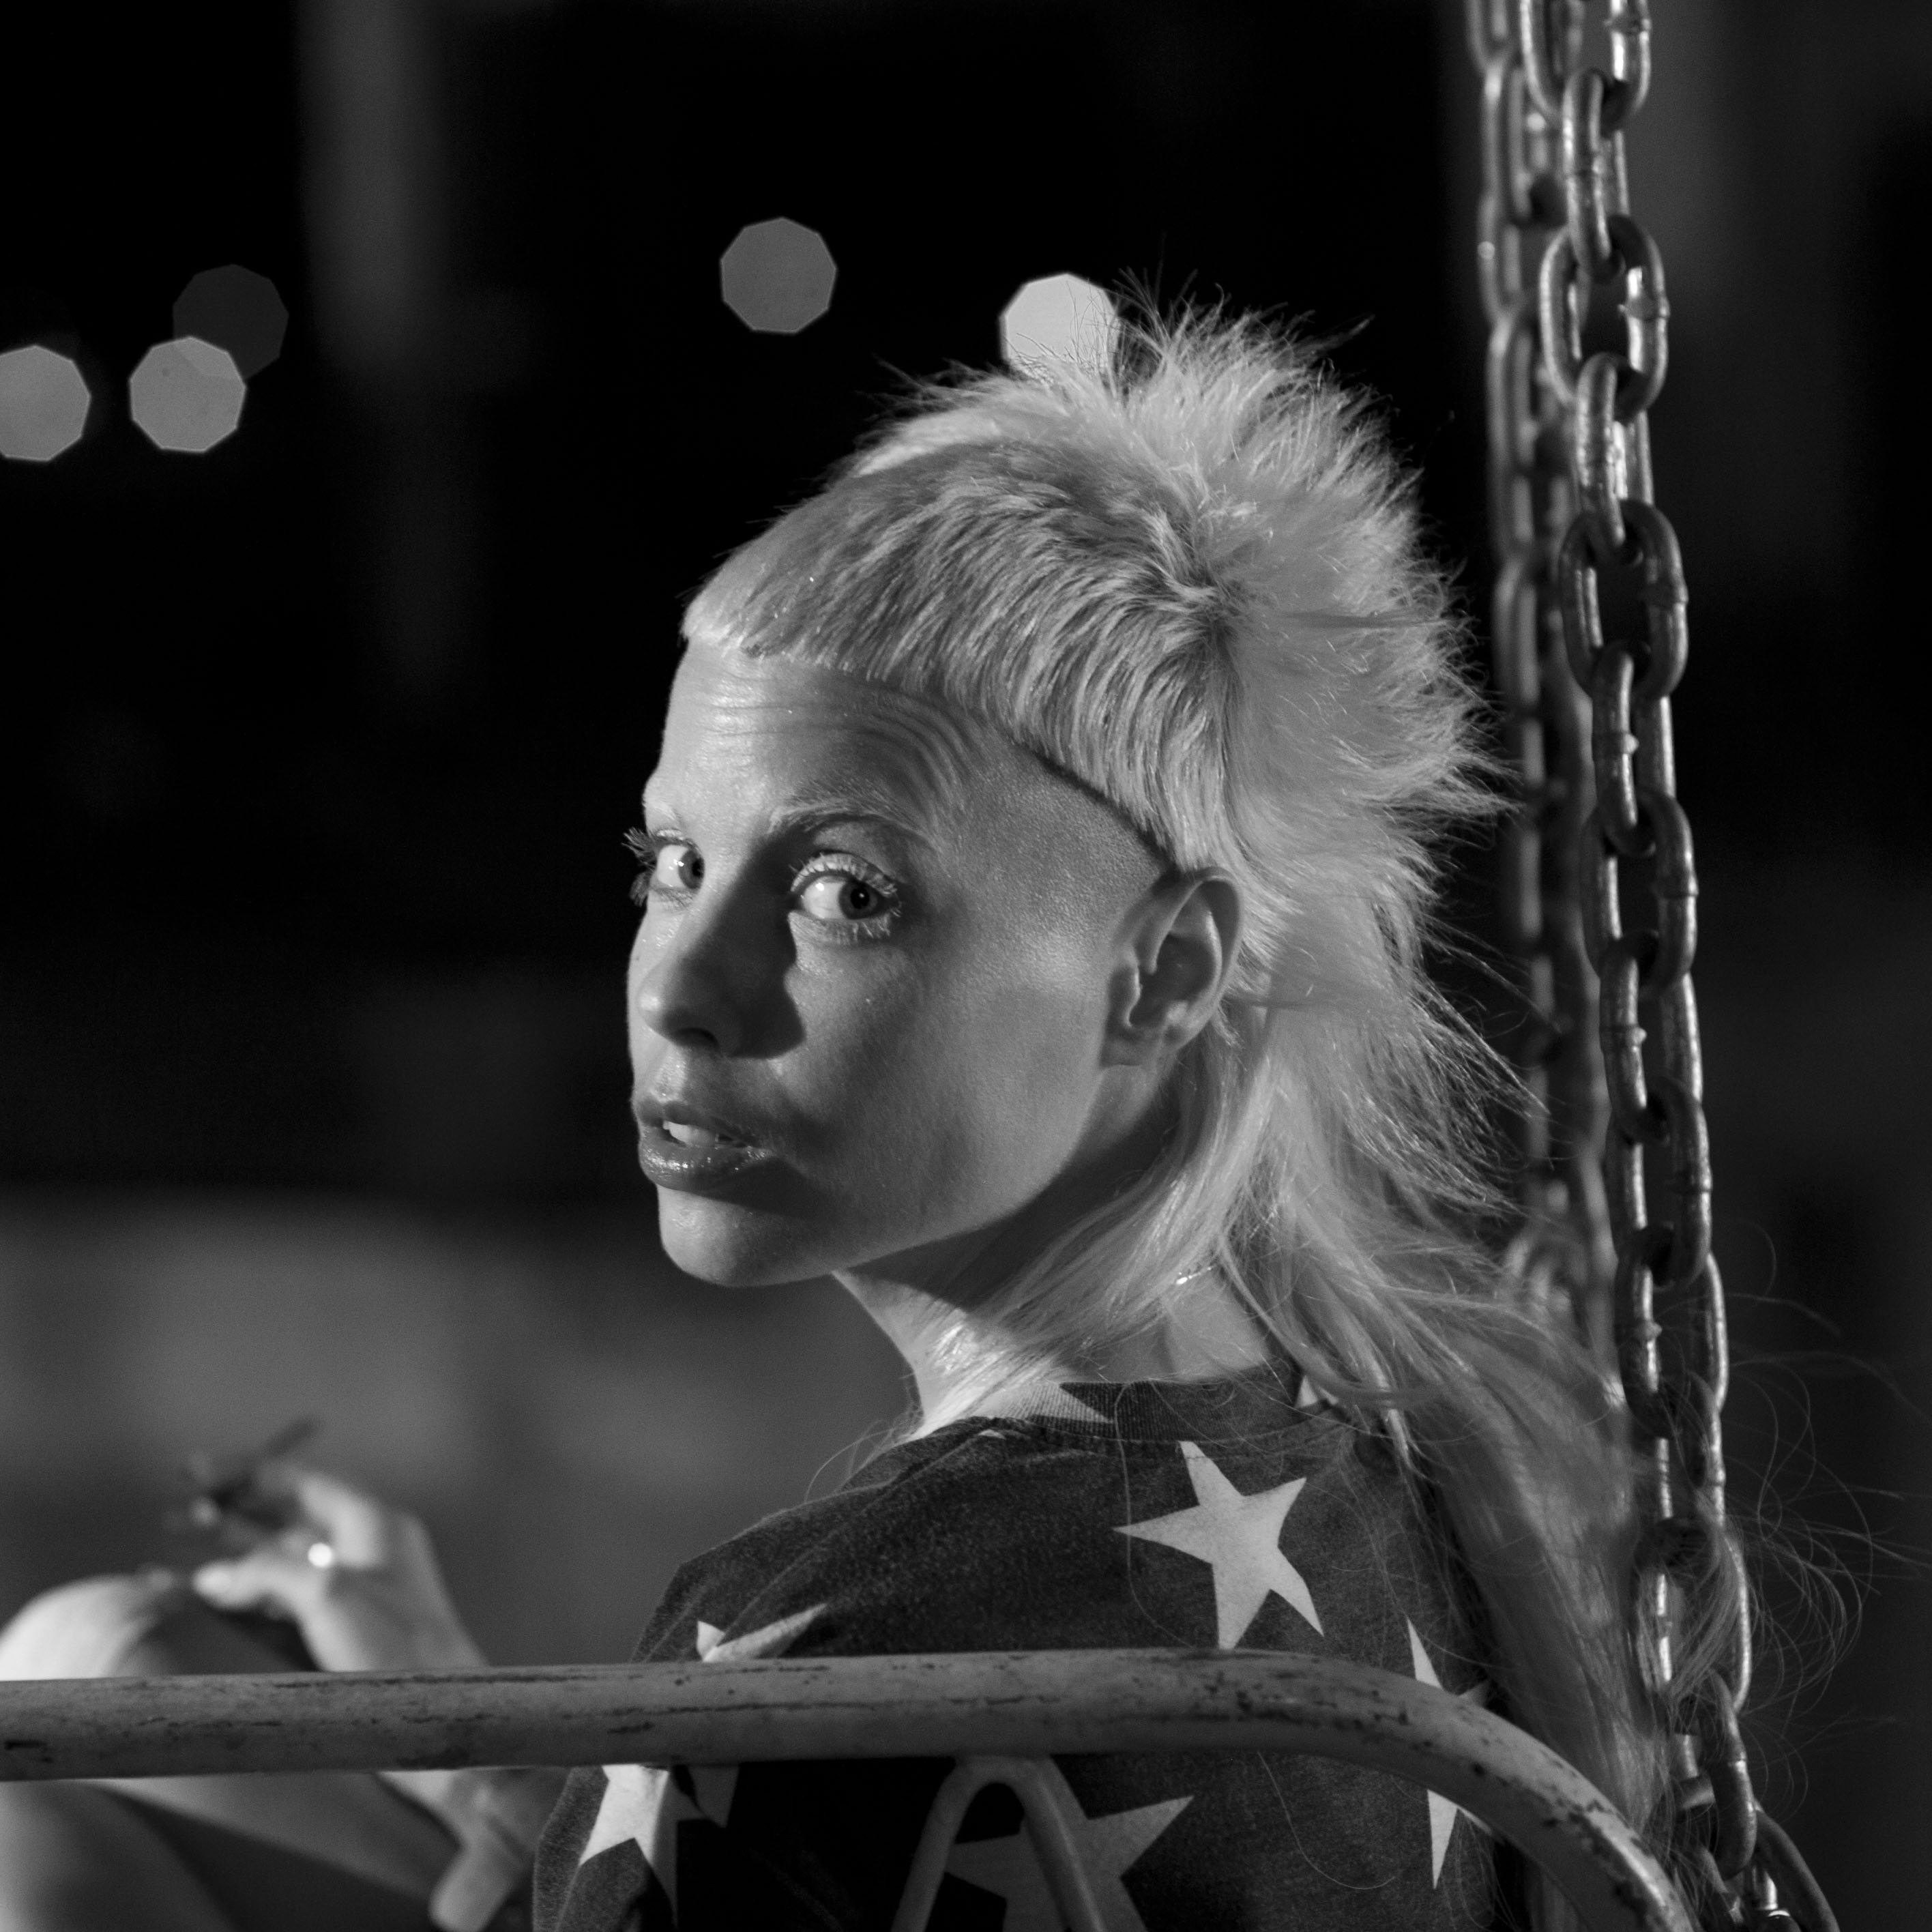 Stephanie Blomkamp Yolandi Visser portrait featured on Orms Connect